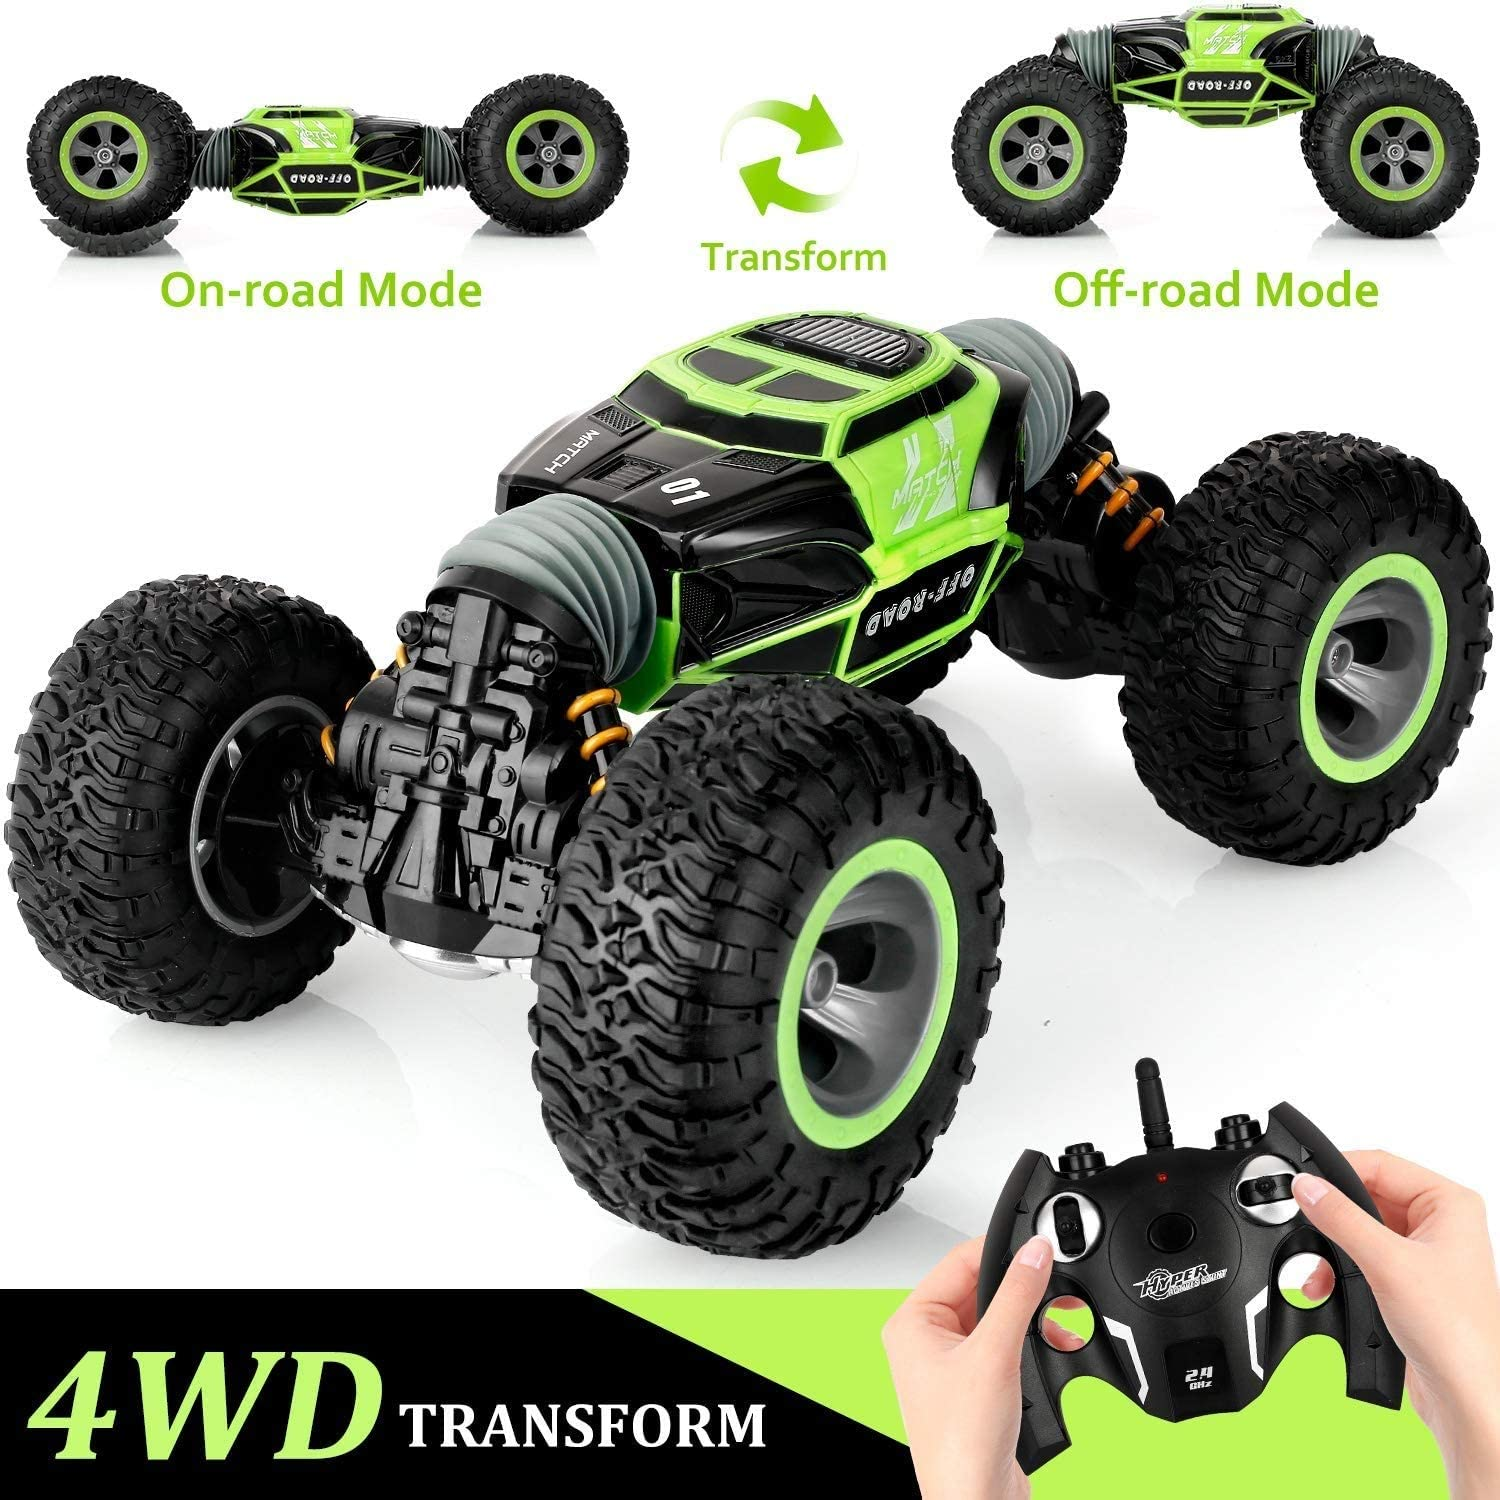 CGIIGI Remote Control Car, 2.4 GHZ High-speed Stunt RC Racing RC Tracked Car, With Rechargeable Battery, Indoor And Outdoor Cars, Vehicles, Children's Cars, Hobby Cars, Toys, Gifts For Children, Green